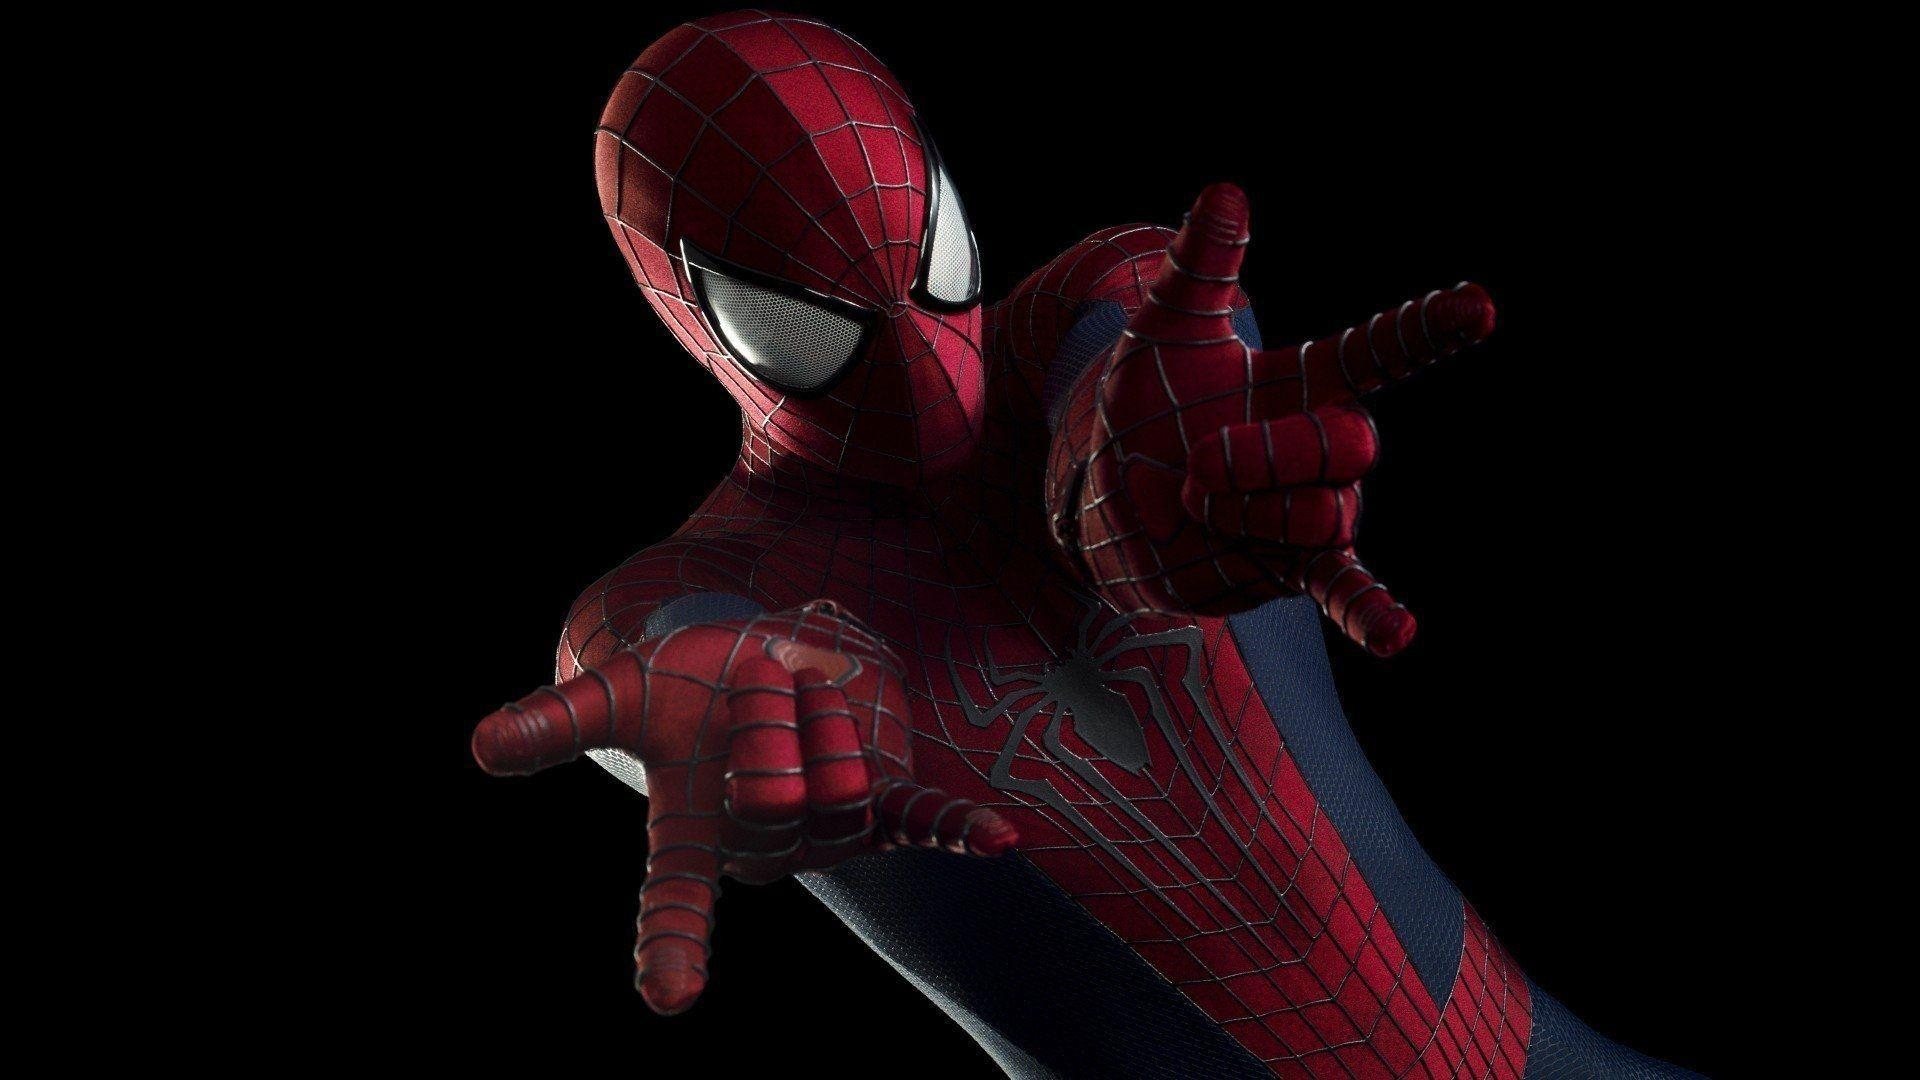 33 The Amazing Spider-Man 2 HD Wallpapers | Backgrounds ...